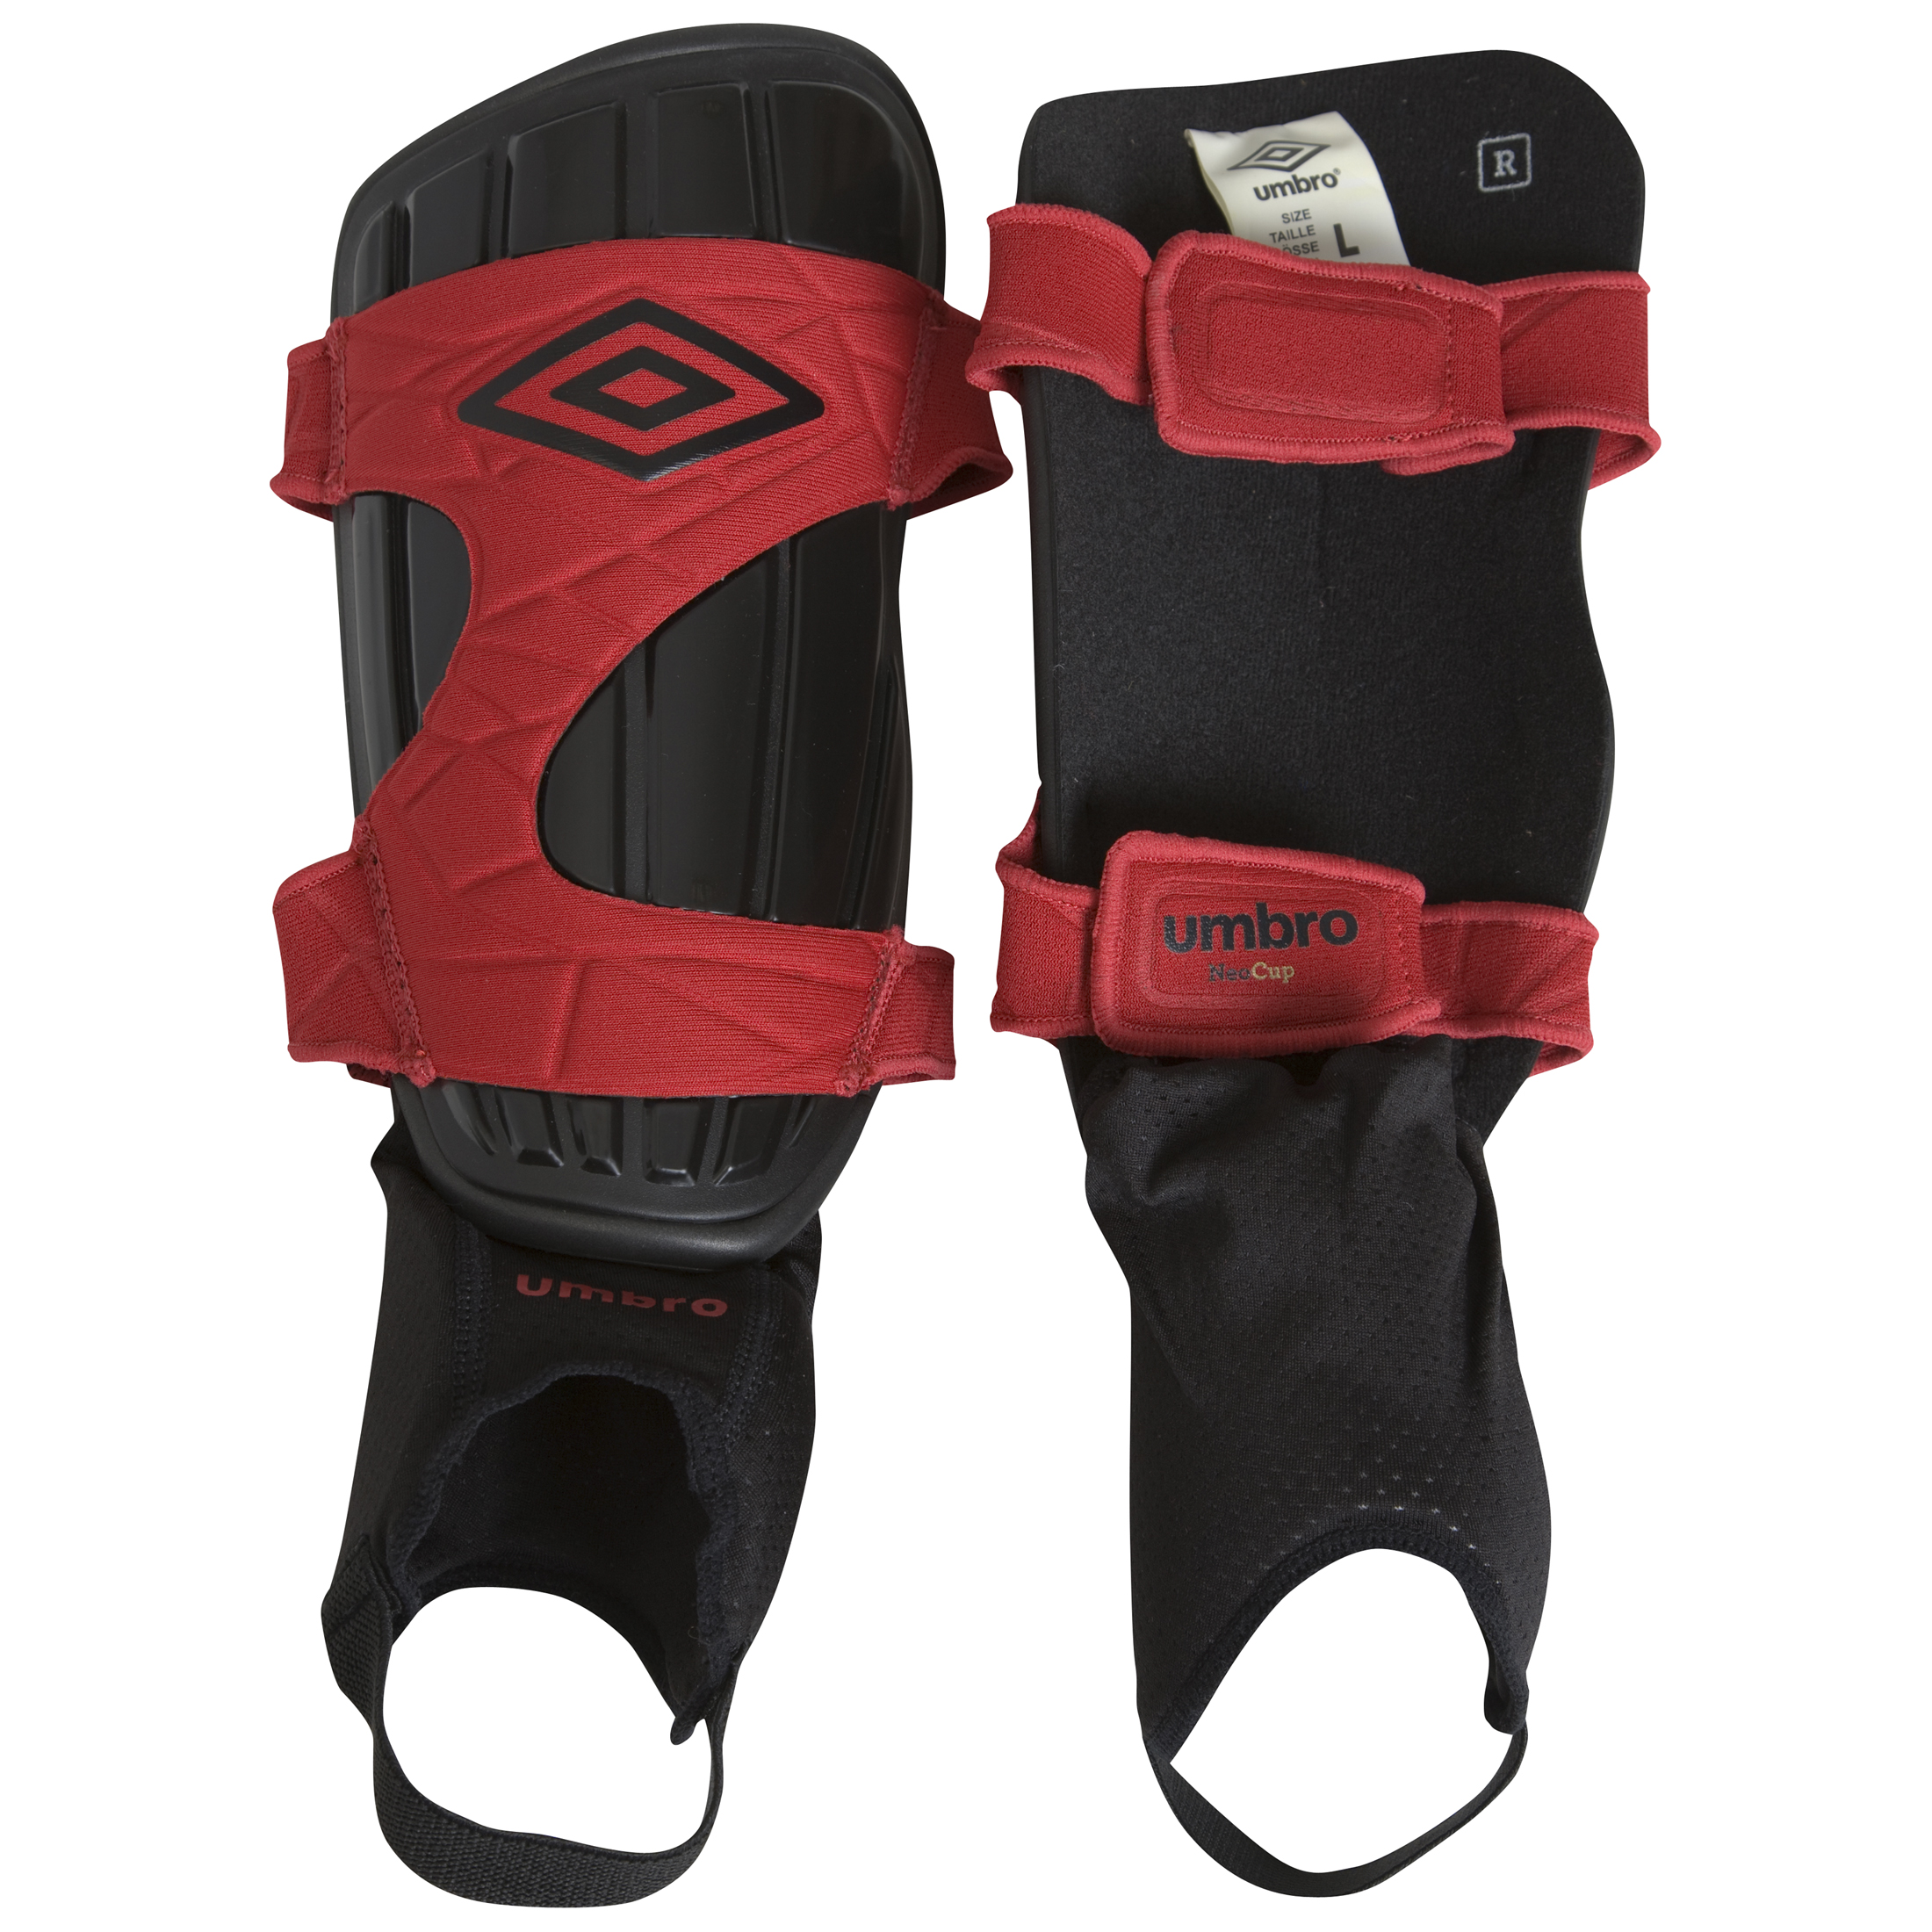 Umbro Cup Shin Guard - Black/Red